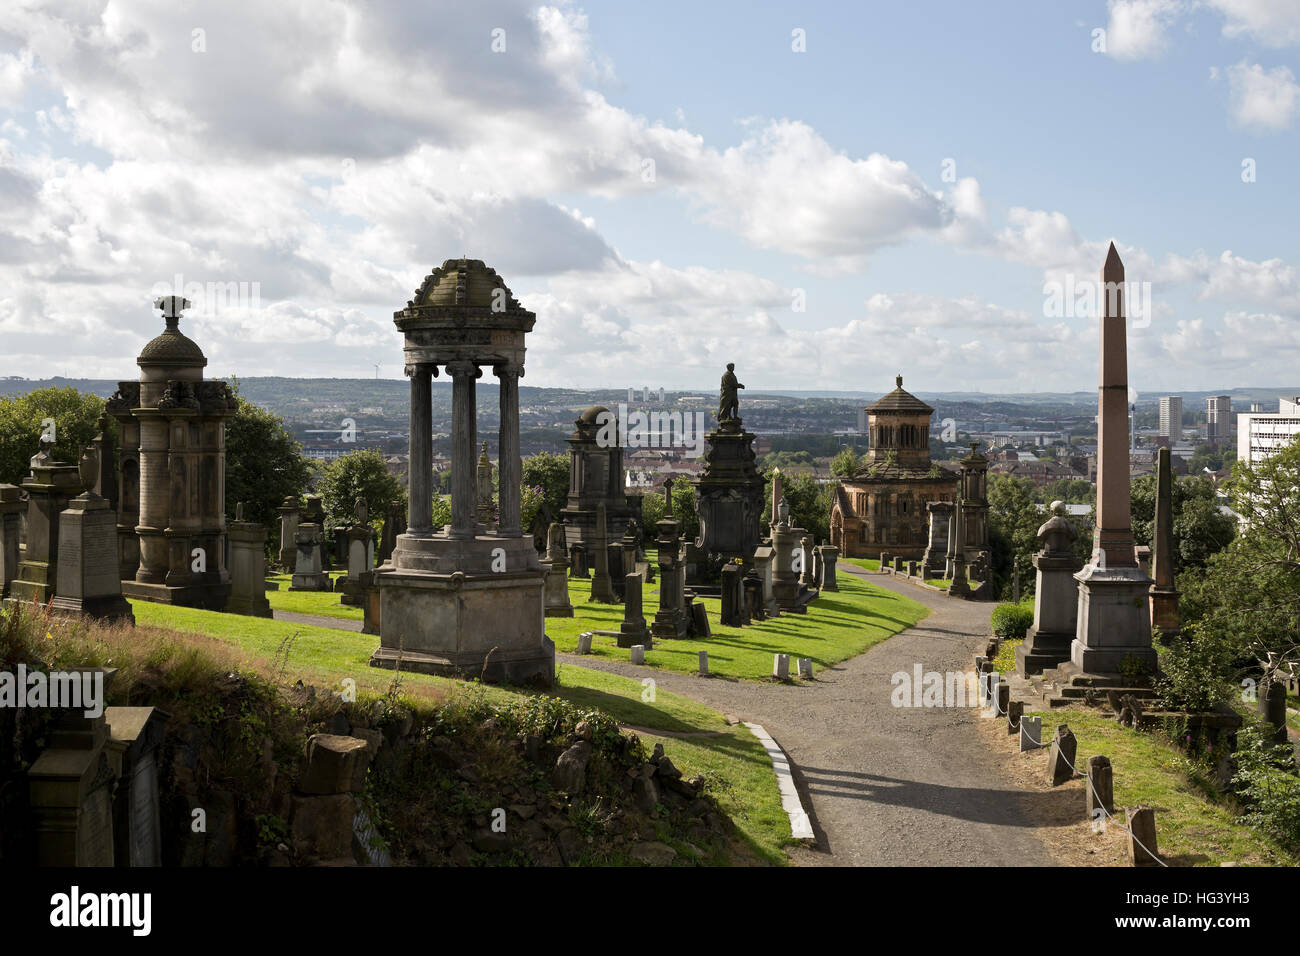 Glasgow Necropolis, Scotland, UK. - Stock Image